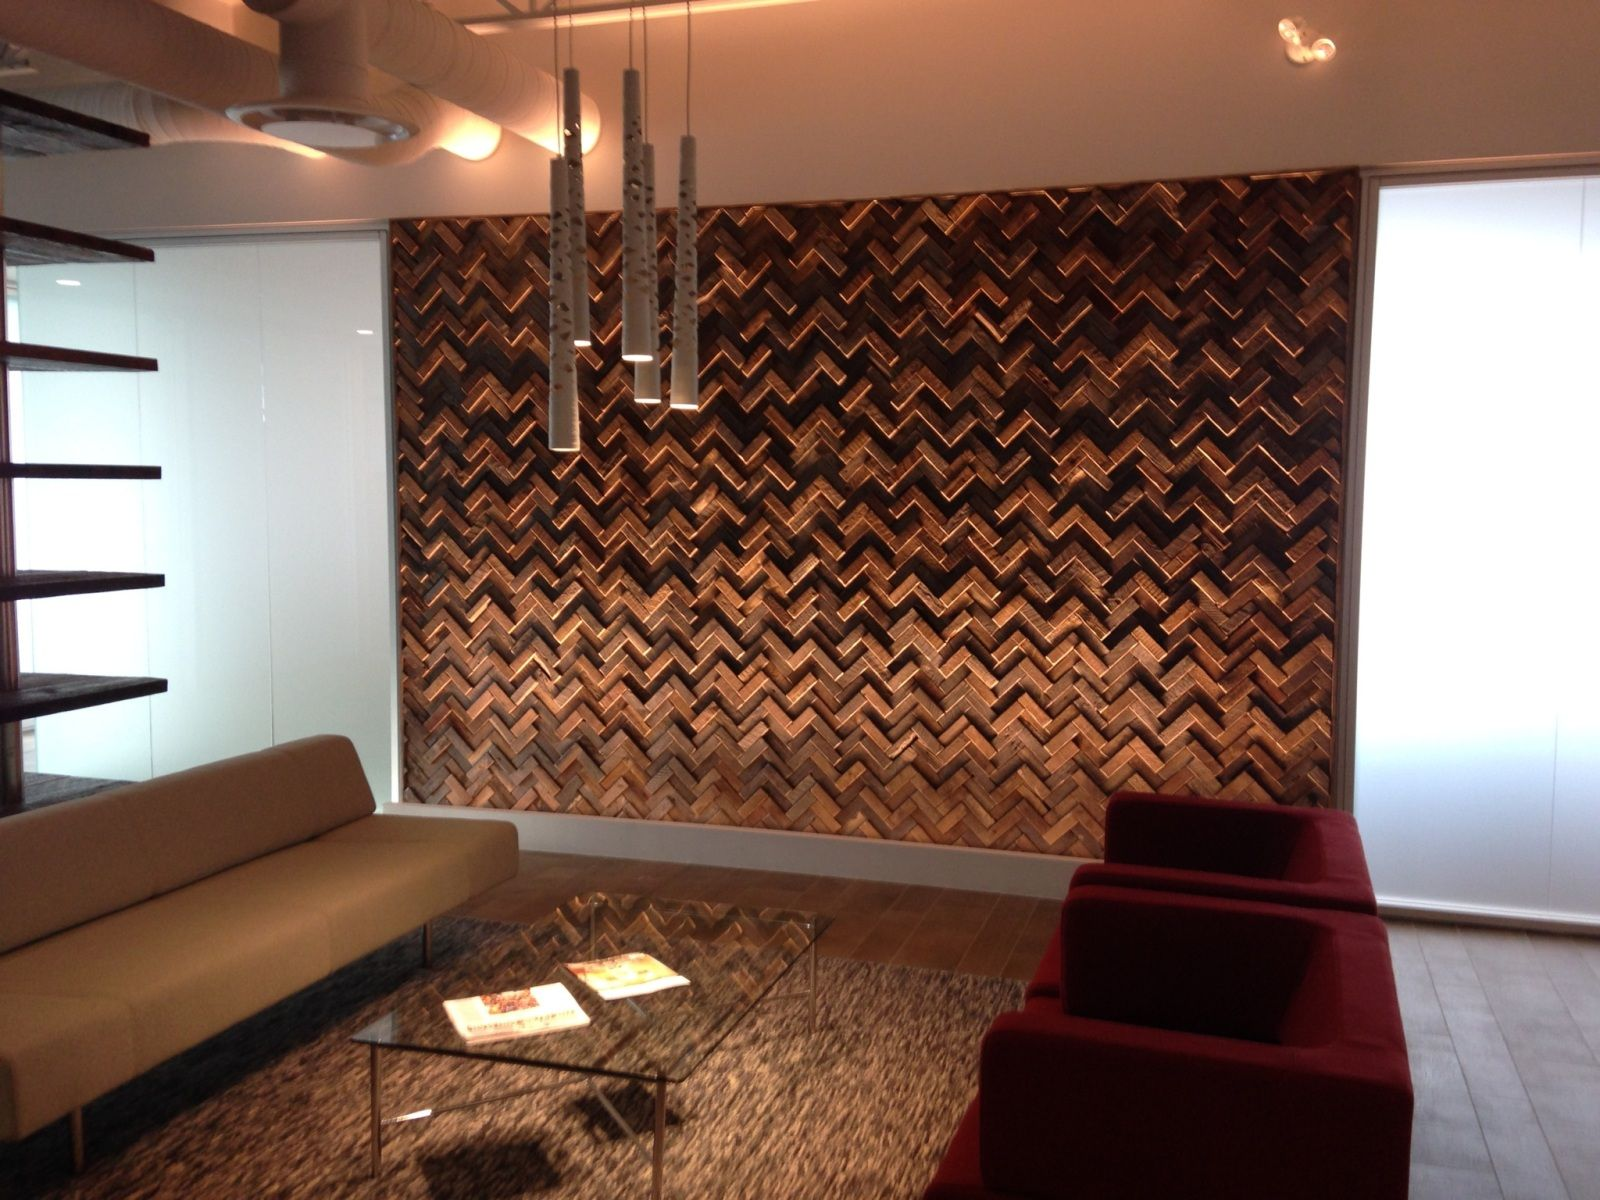 Unique Wall Covering Effigy Of Unique Wood Wall Covering Ideas  Interior Design Ideas